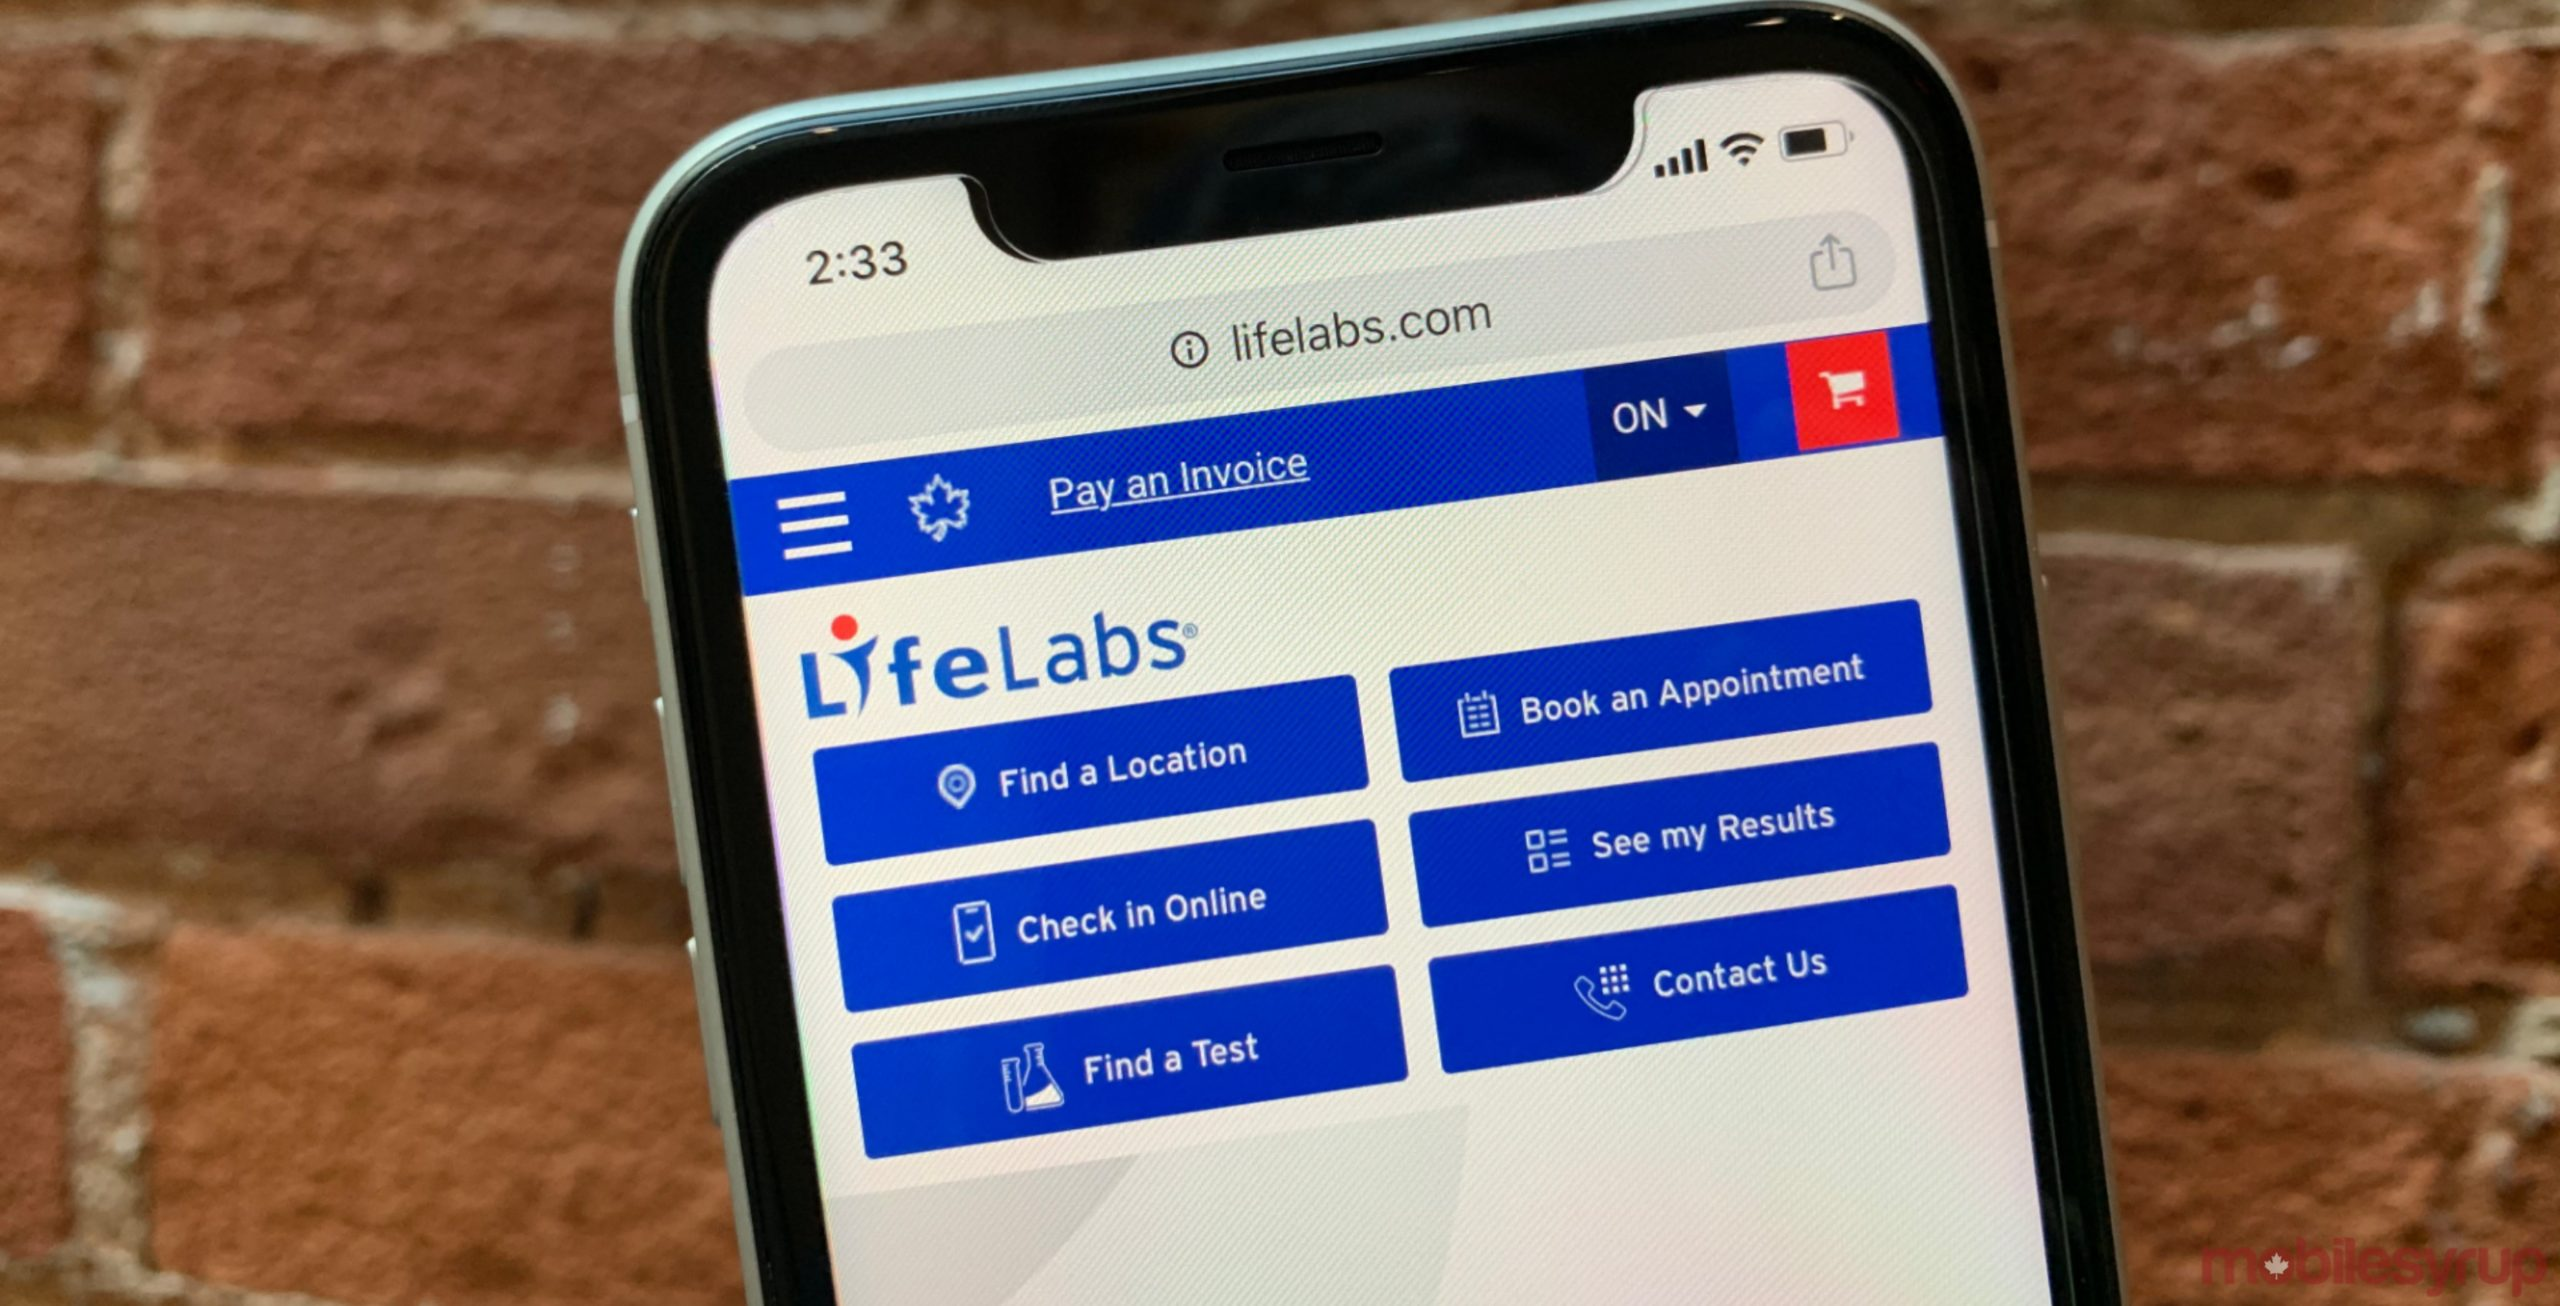 LifeLabs notifies customers about attack, asks them to create new passwords